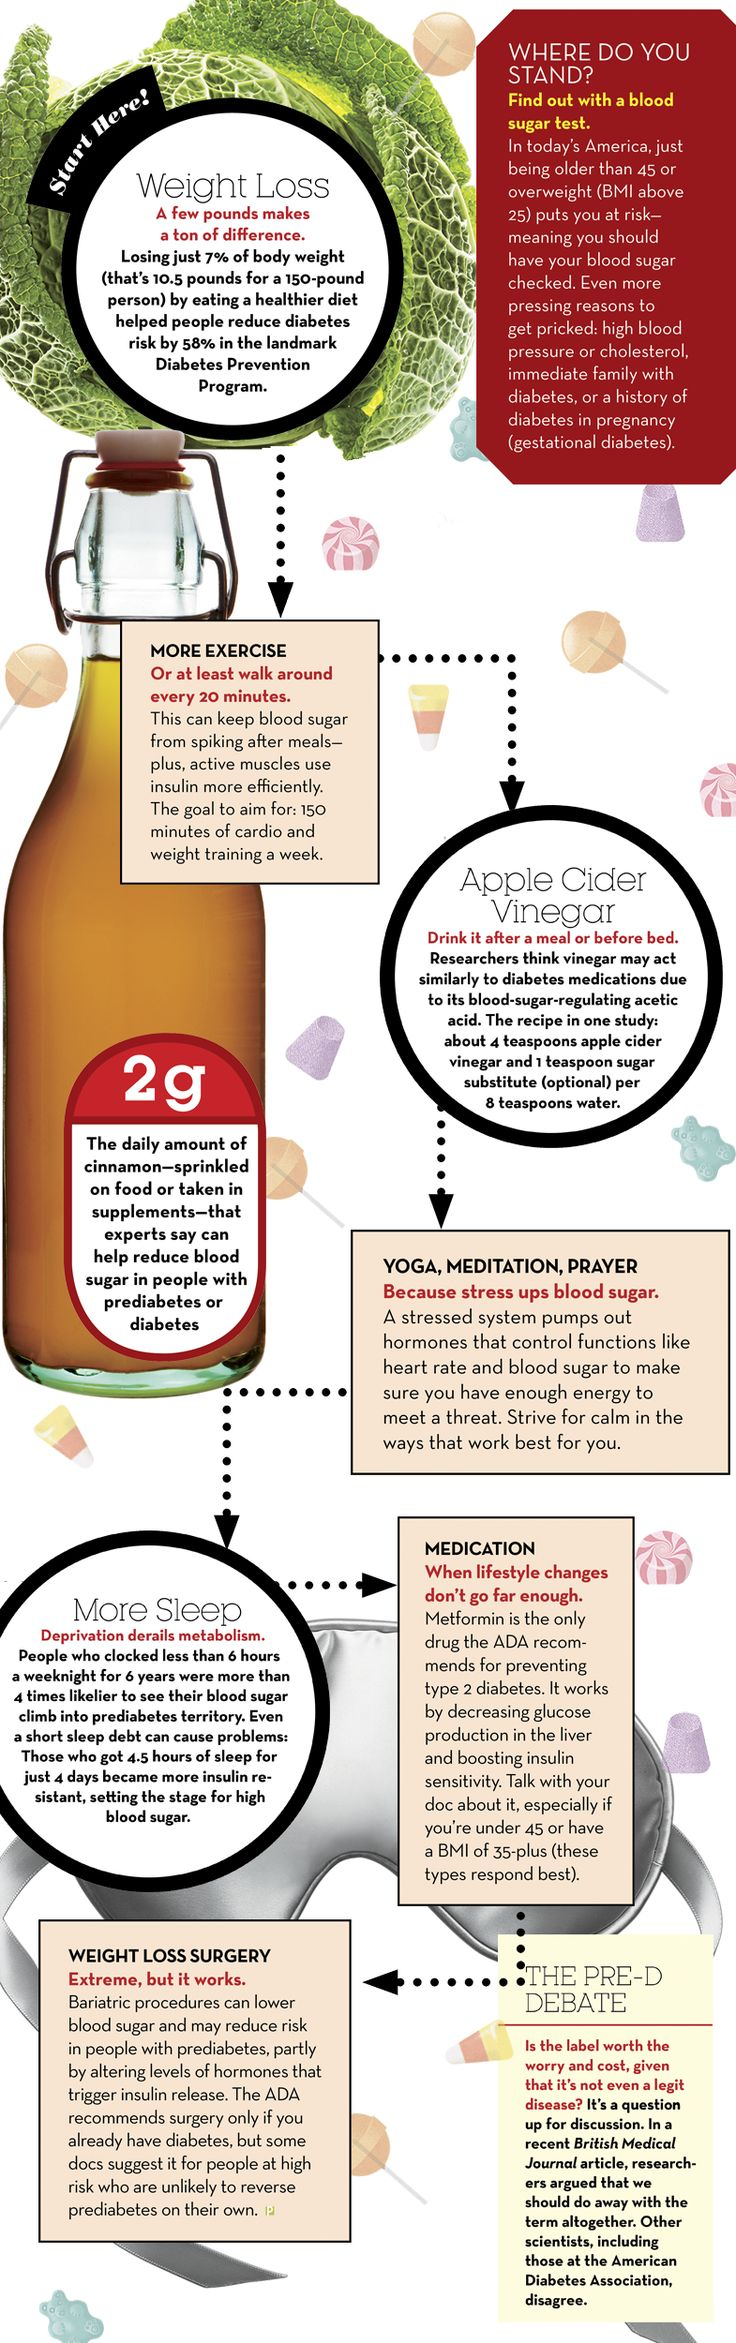 8 Ways To Keep Prediabetes From Becoming Diabetes  http://www.prevention.com/health/diabetes/how-prevent-prediabetes-becoming-diabetes